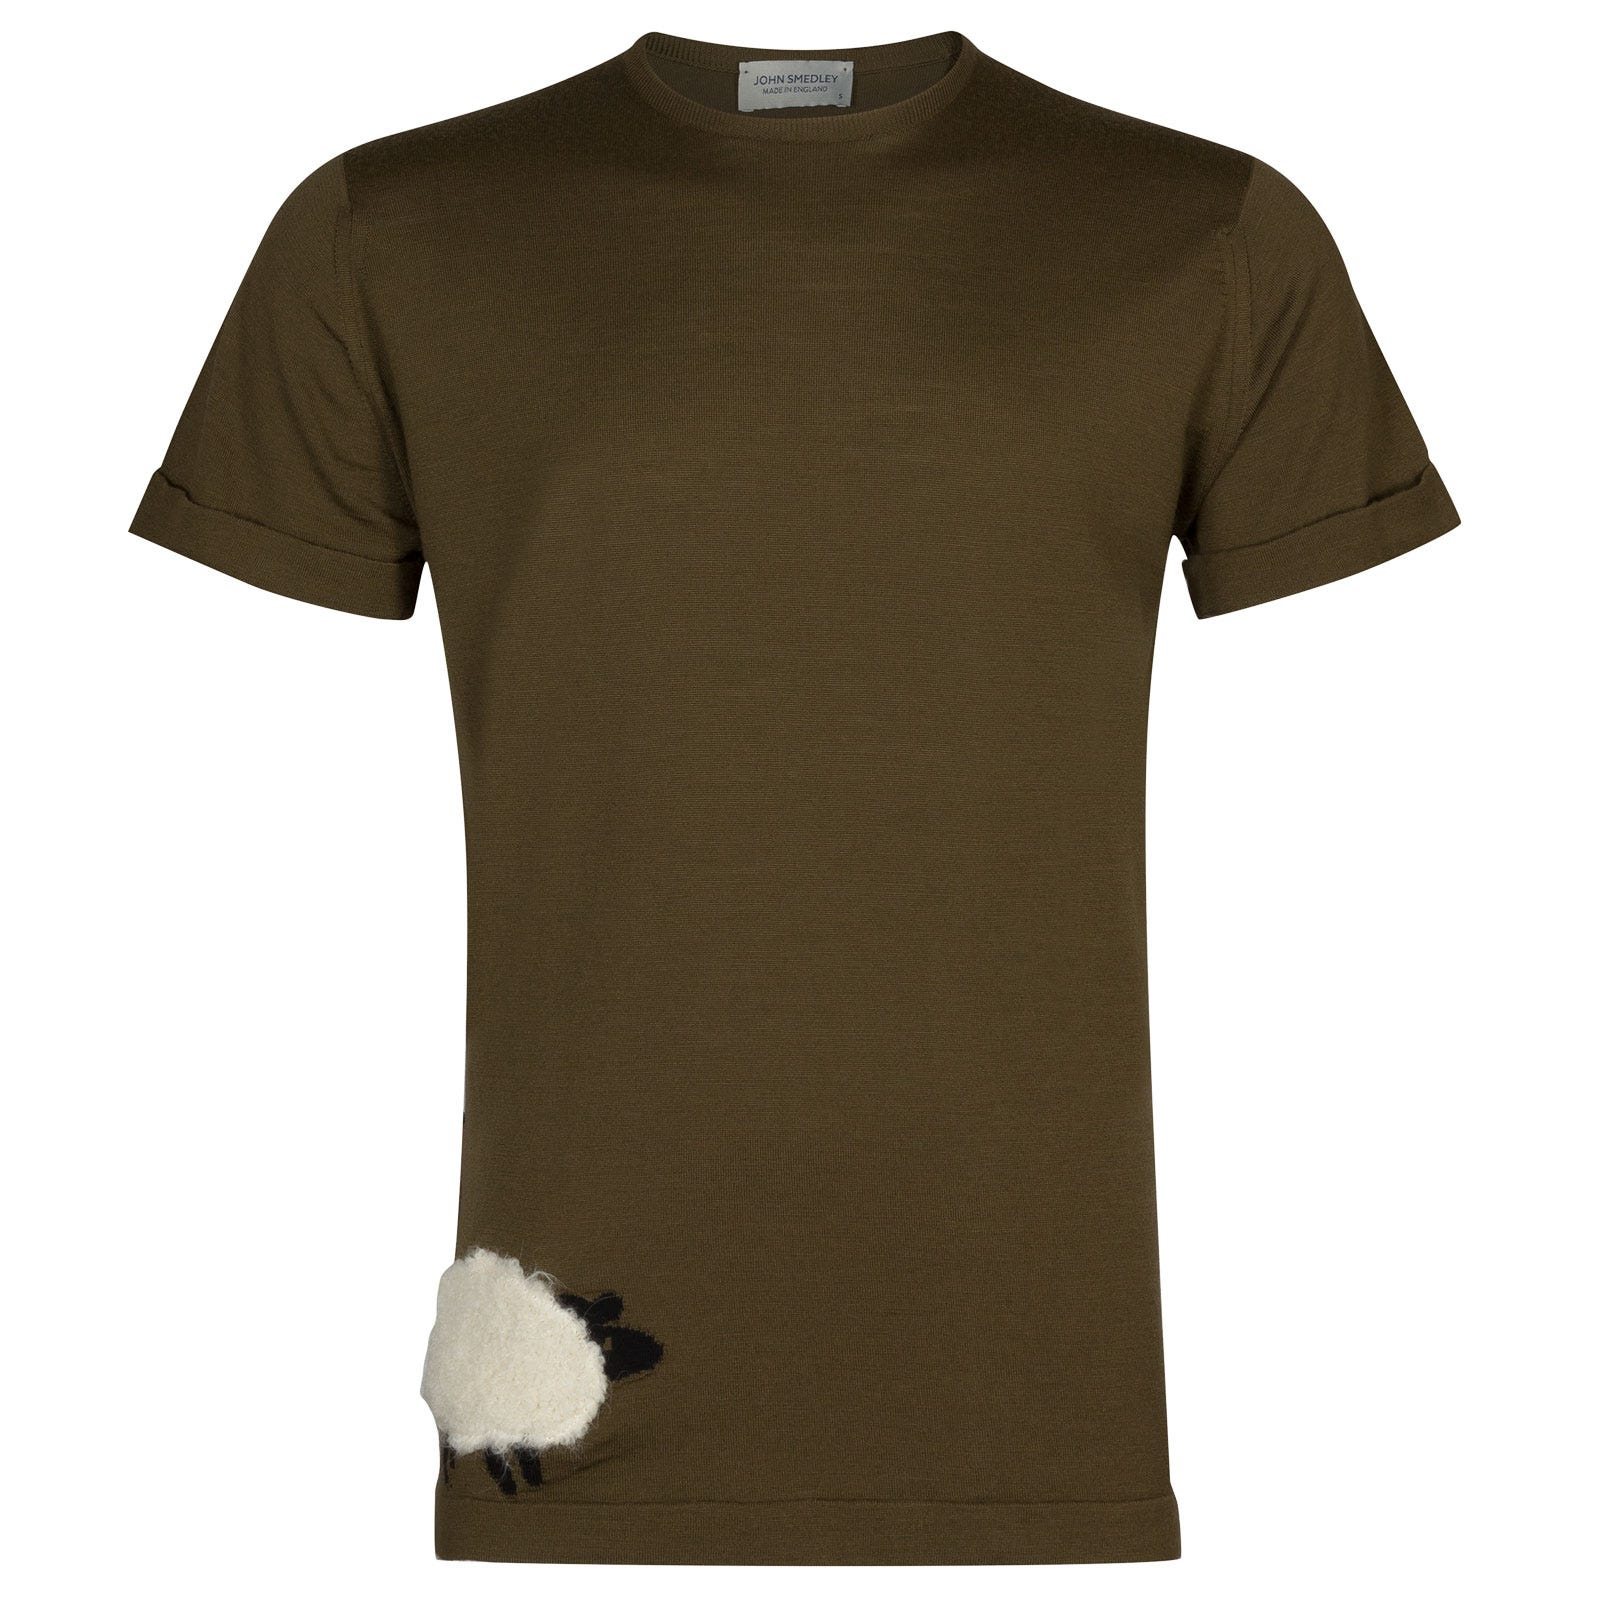 John Smedley bleat Merino Wool T-shirt in Kielder Green/Snow White-XS